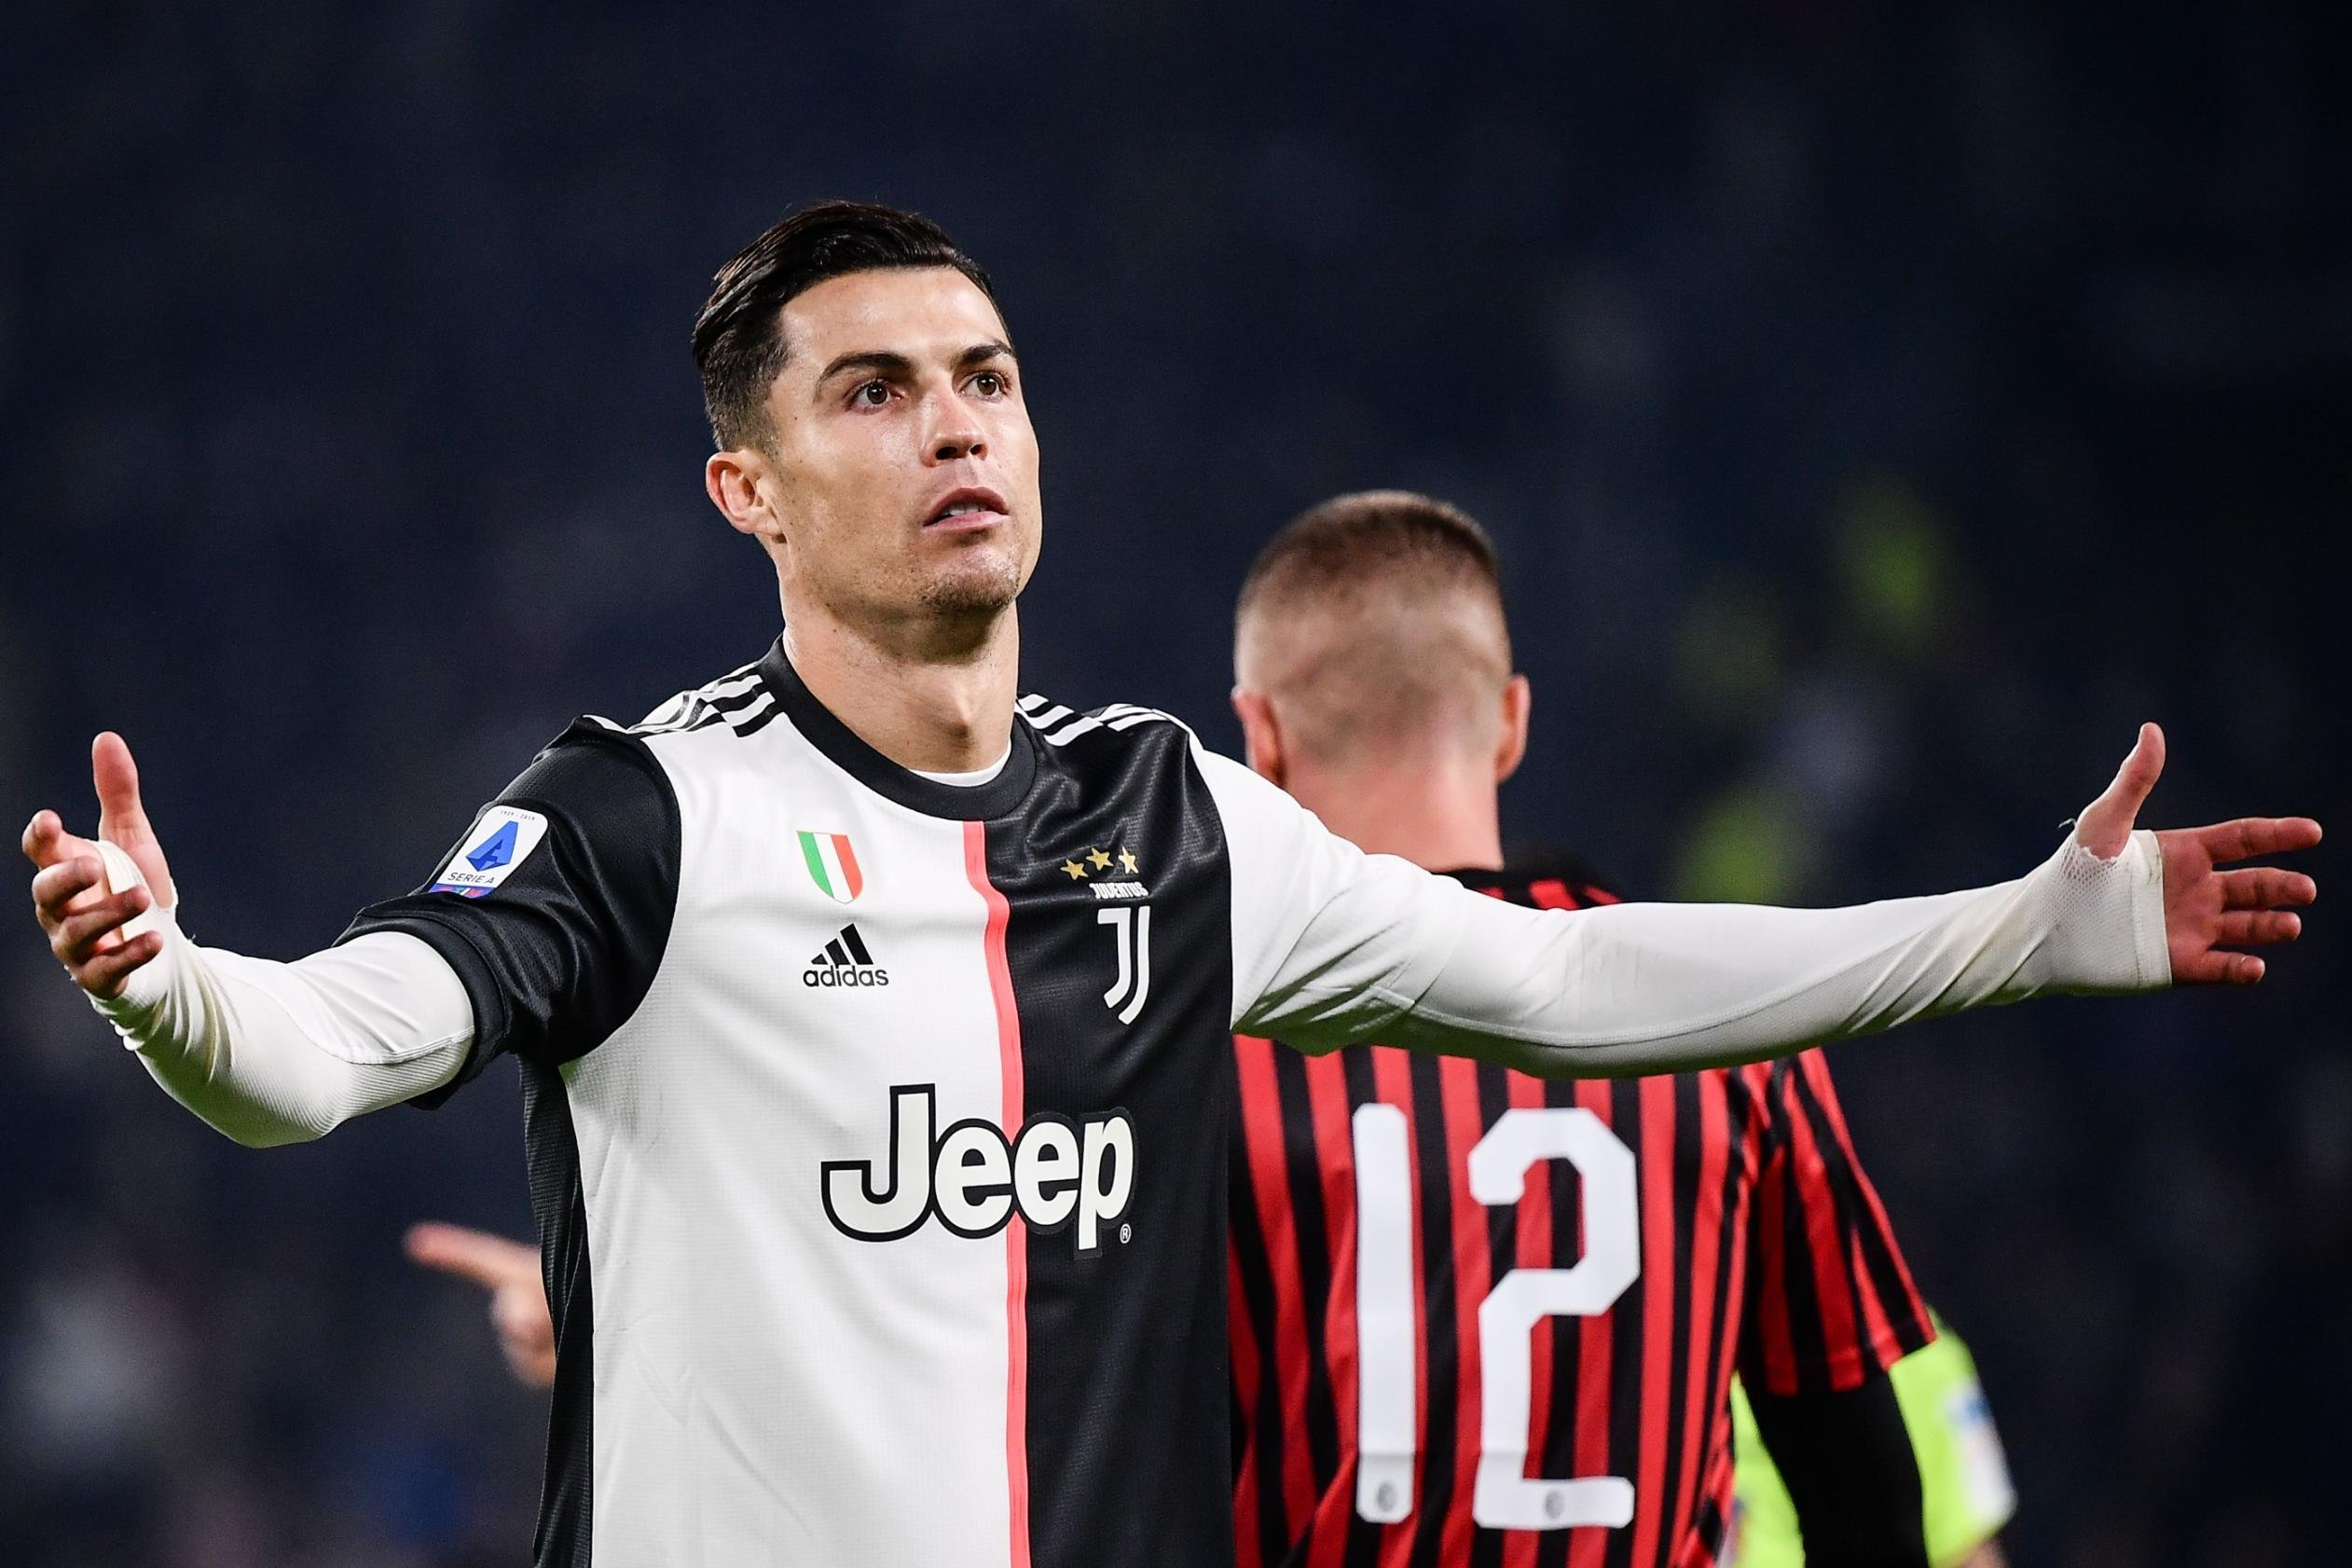 Cristiano Ronaldo 'is not a problem,' says Juventus coach Maurizio Sarri